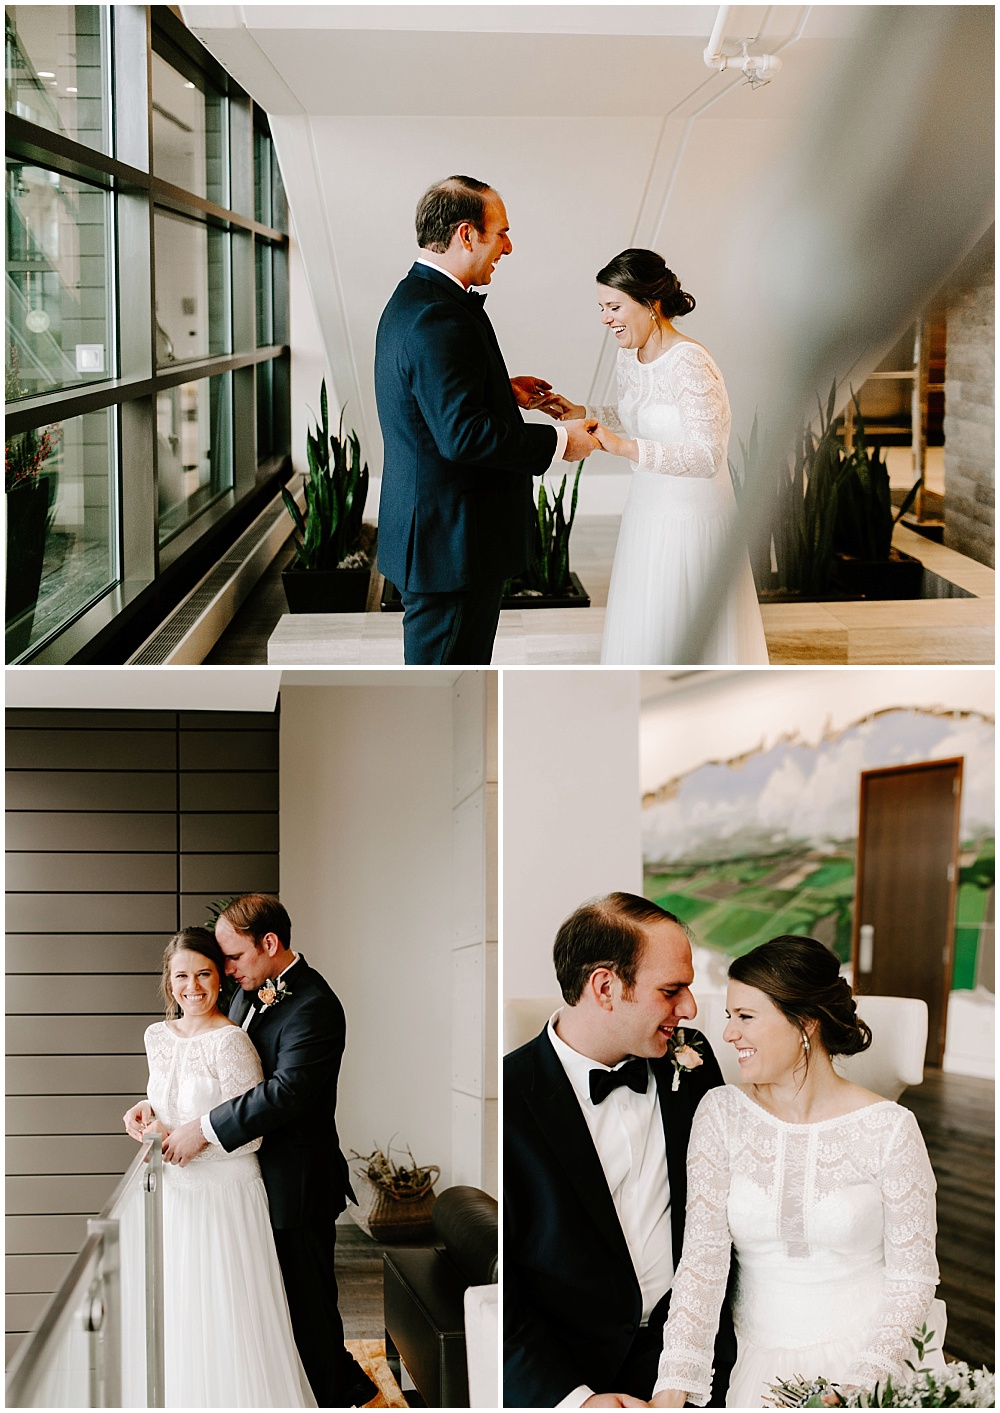 Bride and groom winter wedding portraits. | Industrial winter wedding at the Biltwell Event Center in downtown Indianapolis alongside Emily Wehner Photography and Jessica Dum Wedding Coordination